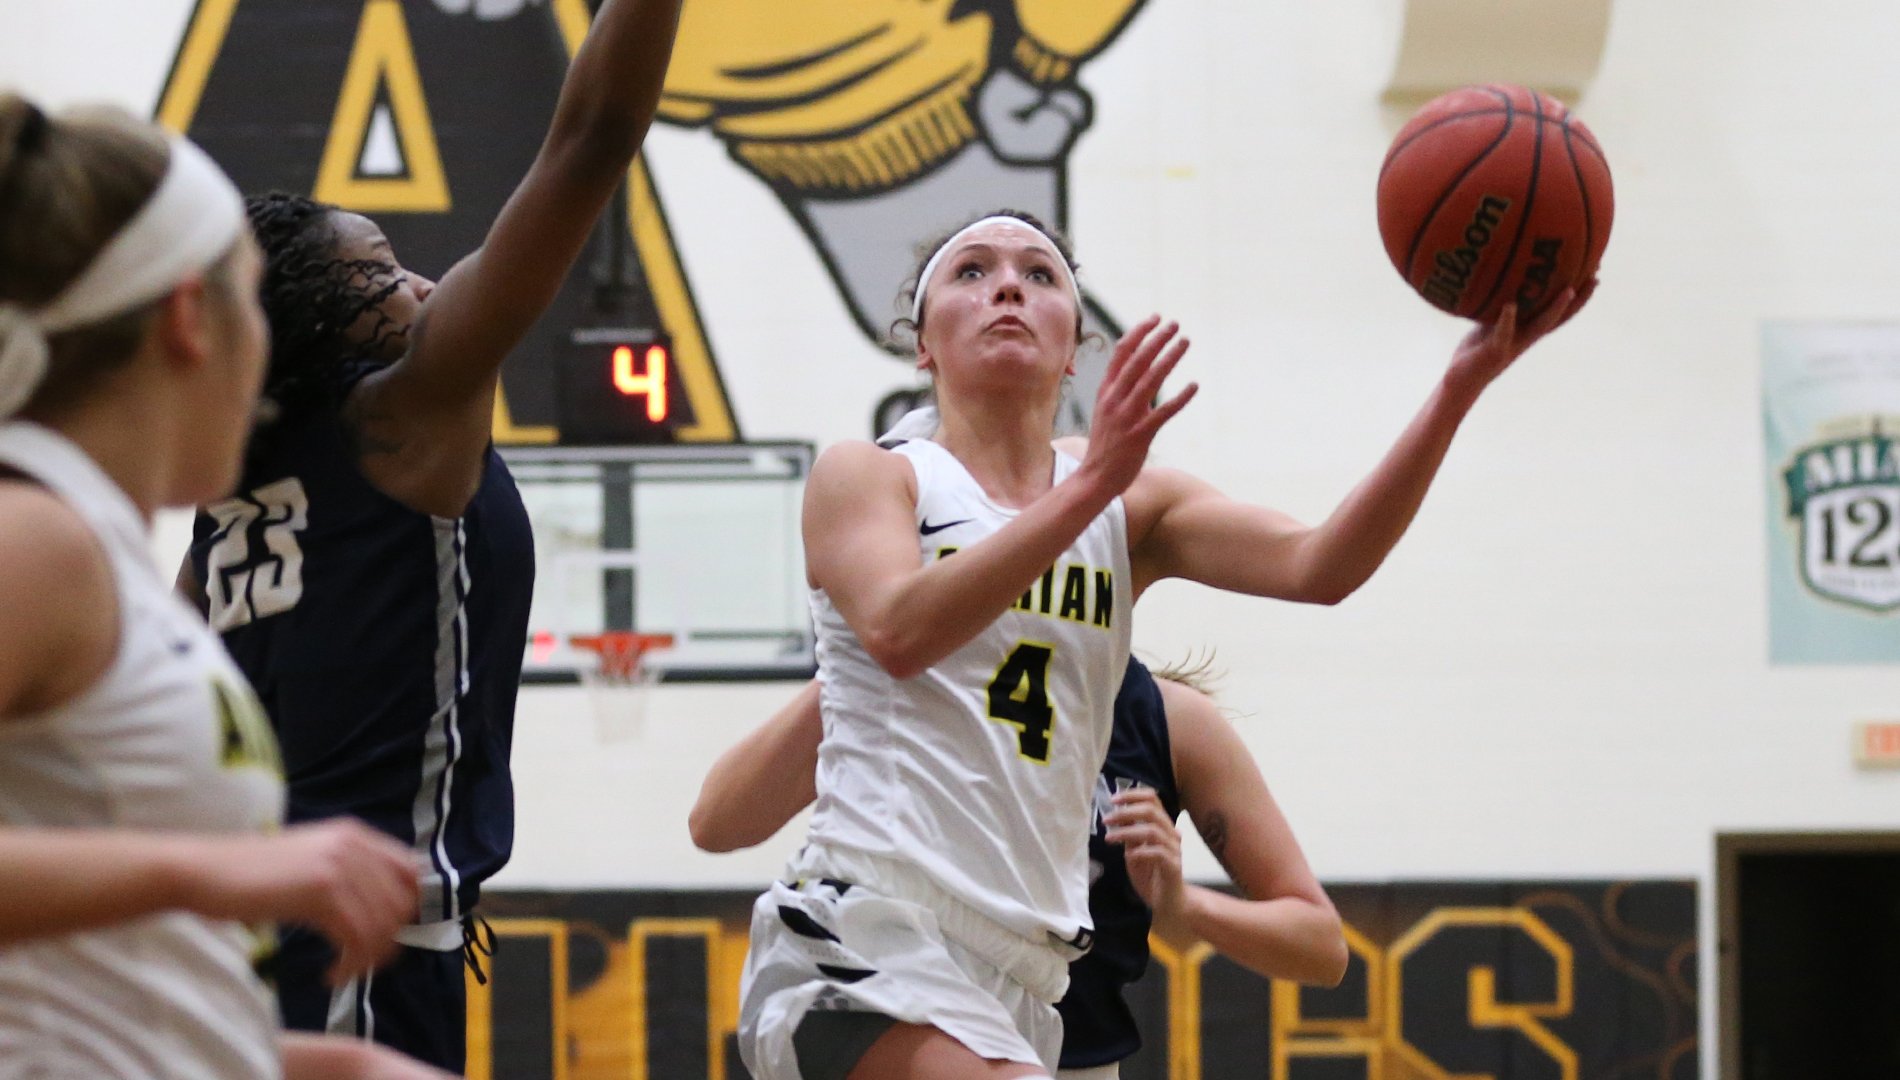 Aly Kubik eyes one of her team-leading seven points in Adrian's 65-29 MIAA loss at the hands of nationally-ranked Trine Wednesday. (Action photo by Mike Dickie)